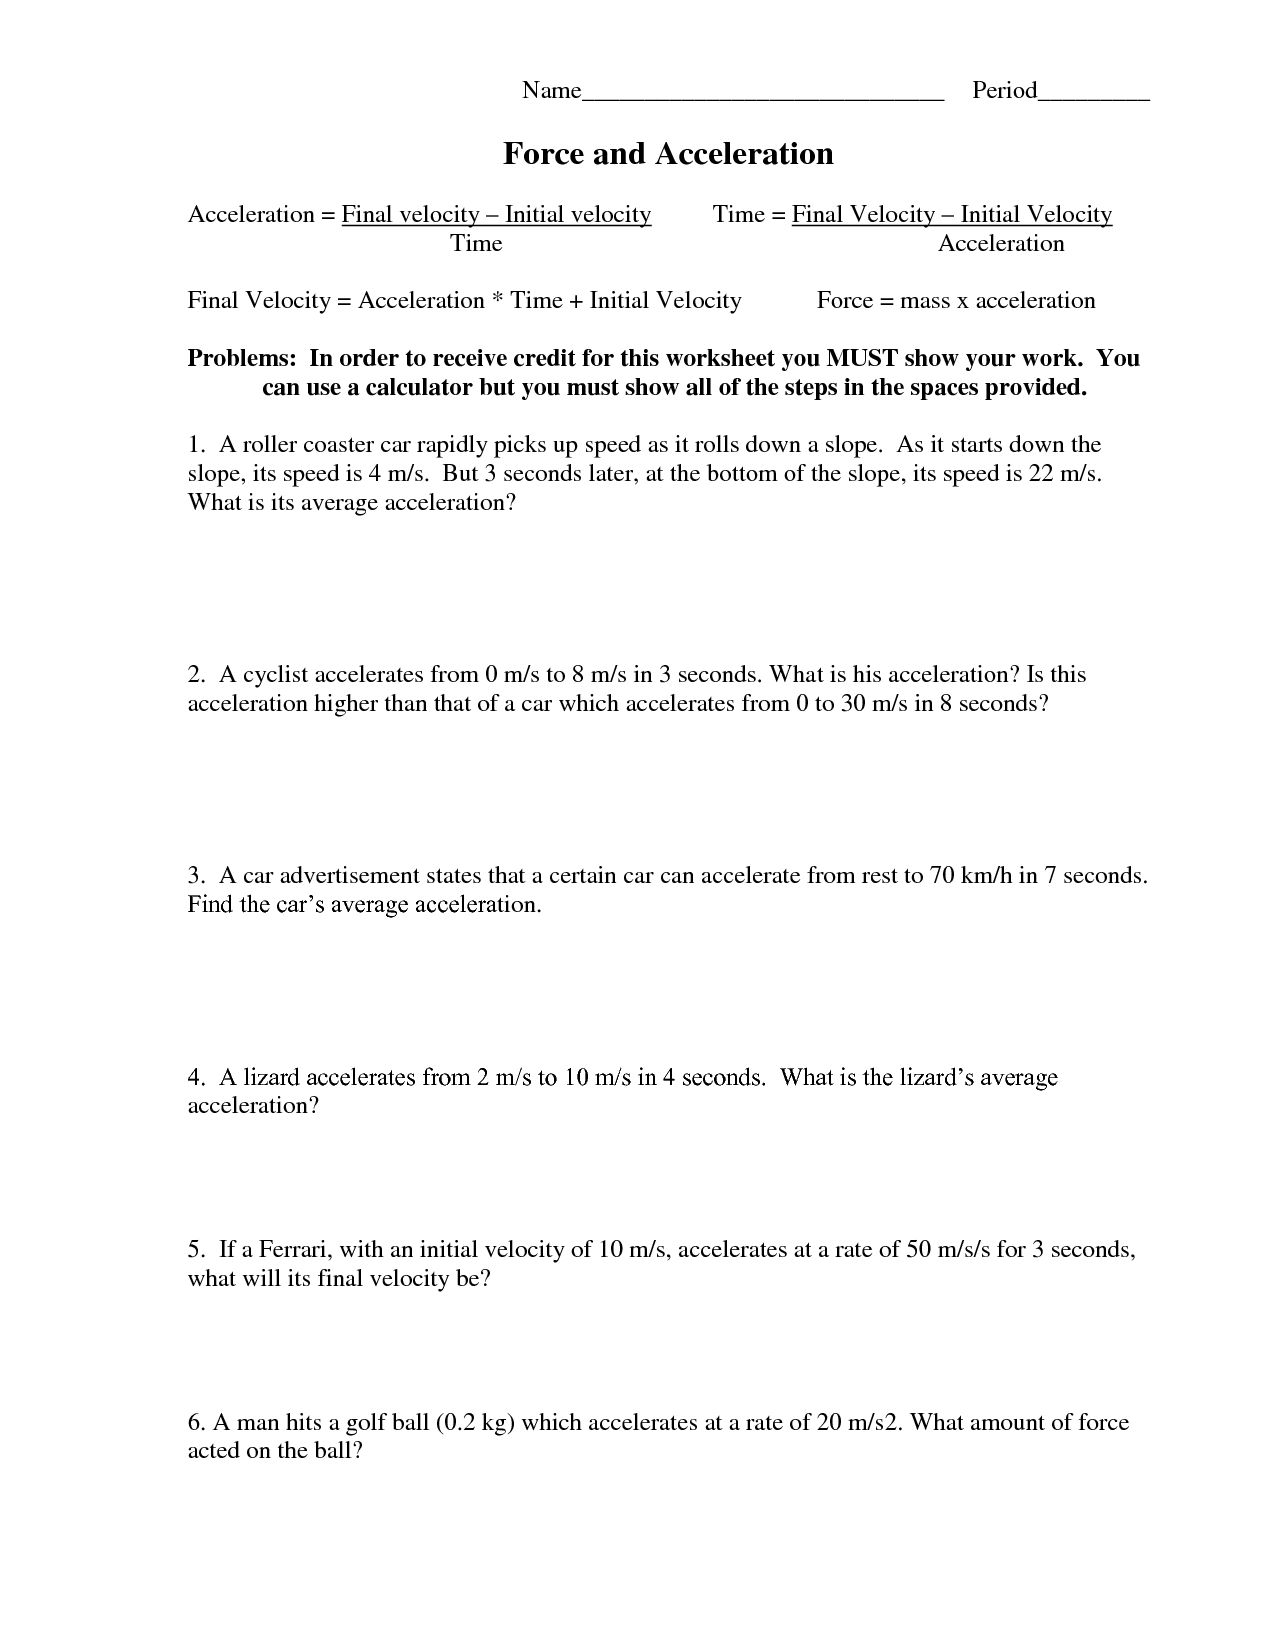 Net Force And Acceleration Worksheet Answers Briefencounters